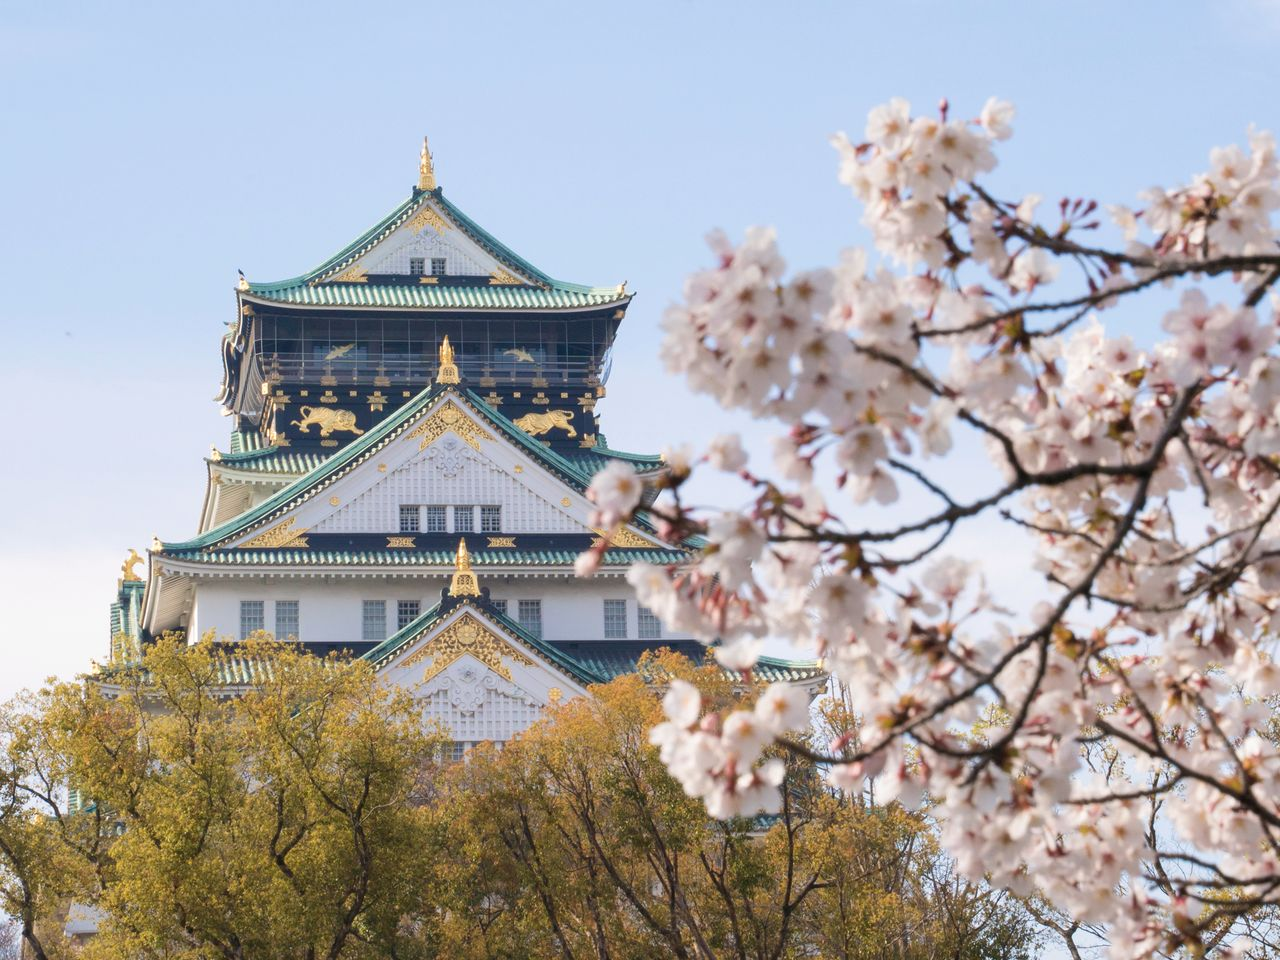 Cherry blossoms in the Nishinomaru Garden, with the castle in the background.